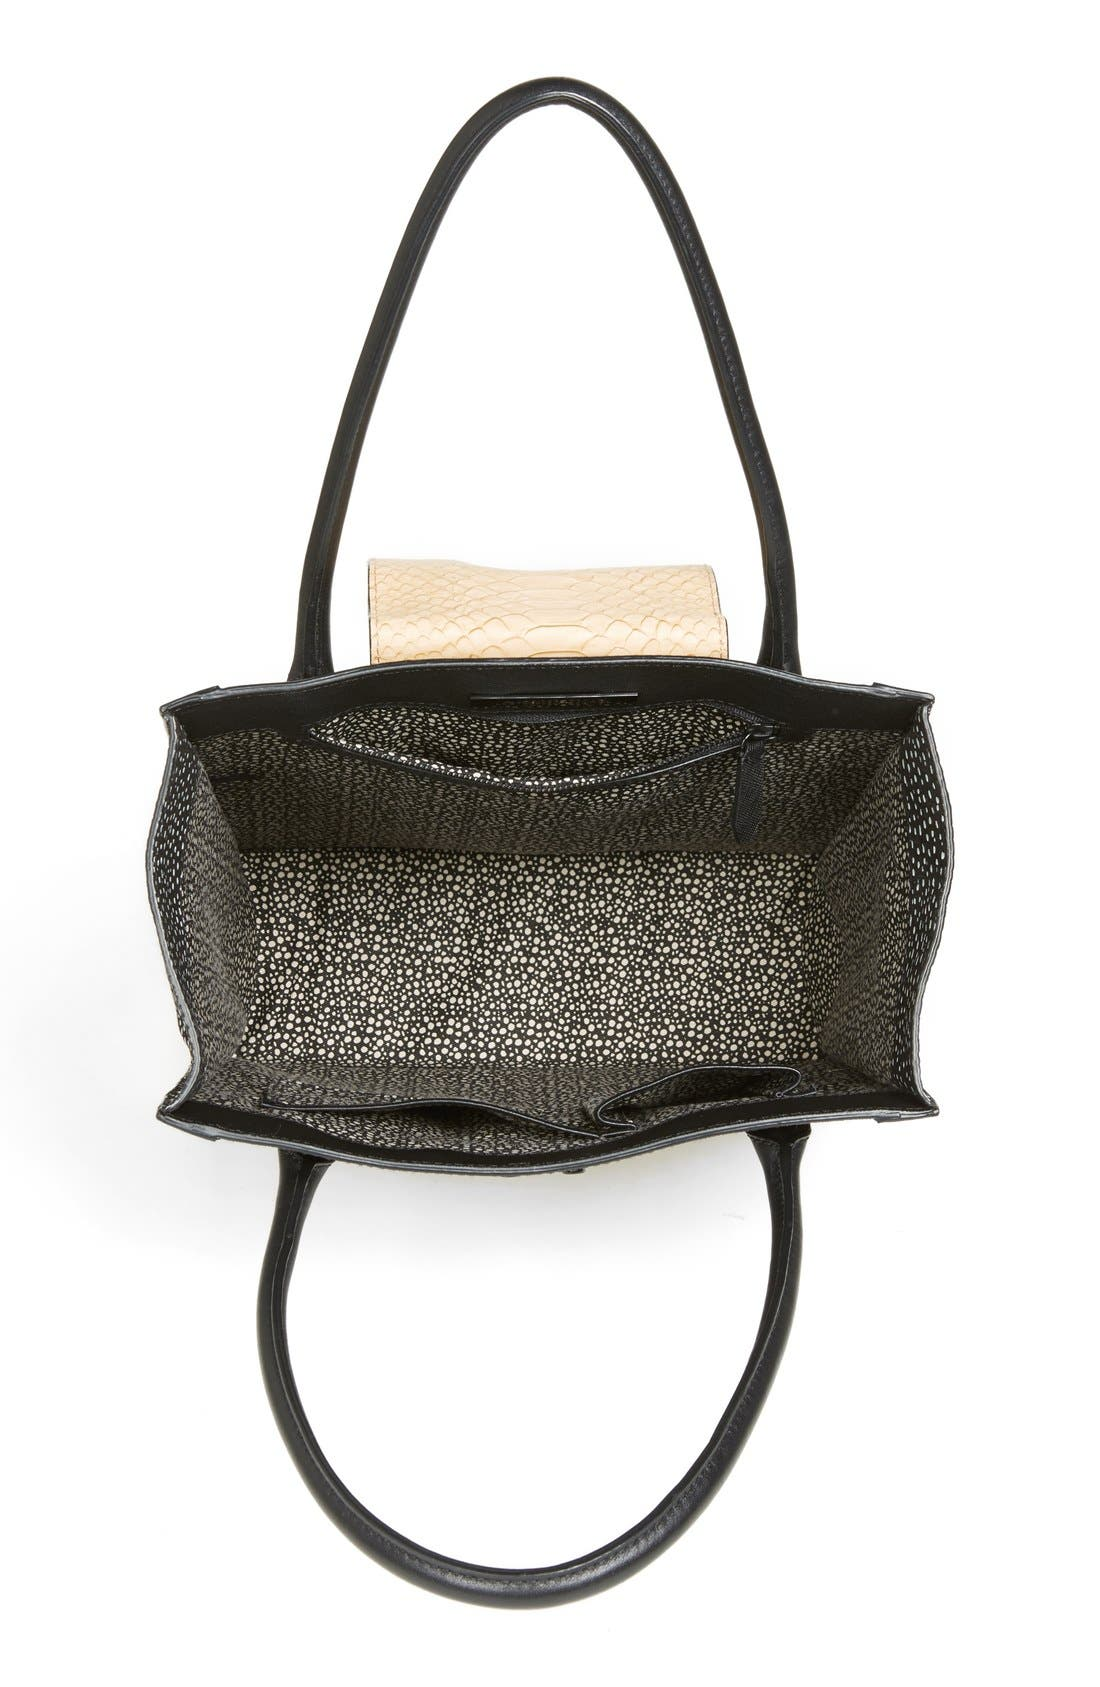 Alternate Image 3  - Loeffler Randall 'Work' Tote